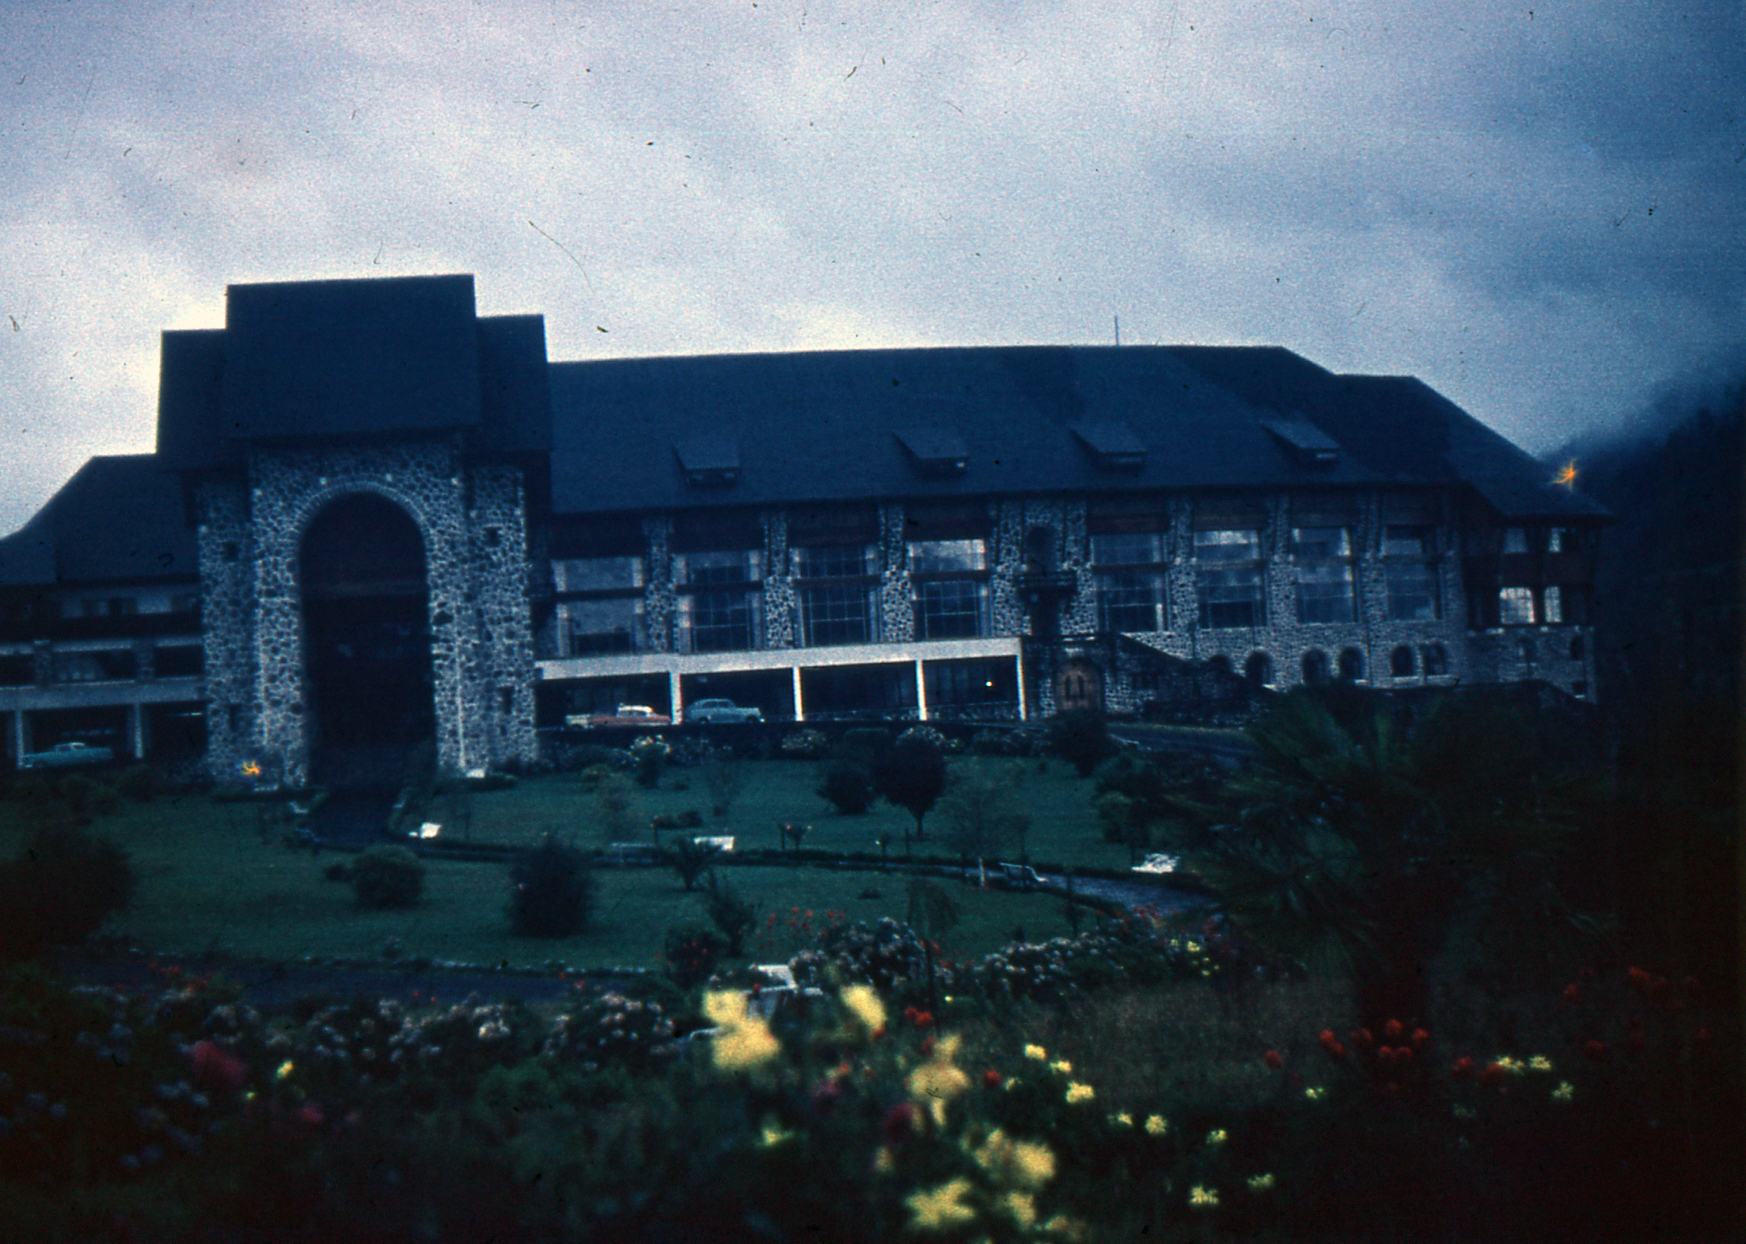 Enterreno - Fotos históricas de chile - fotos antiguas de Chile - Hotel Termas de Puyehue, 1956